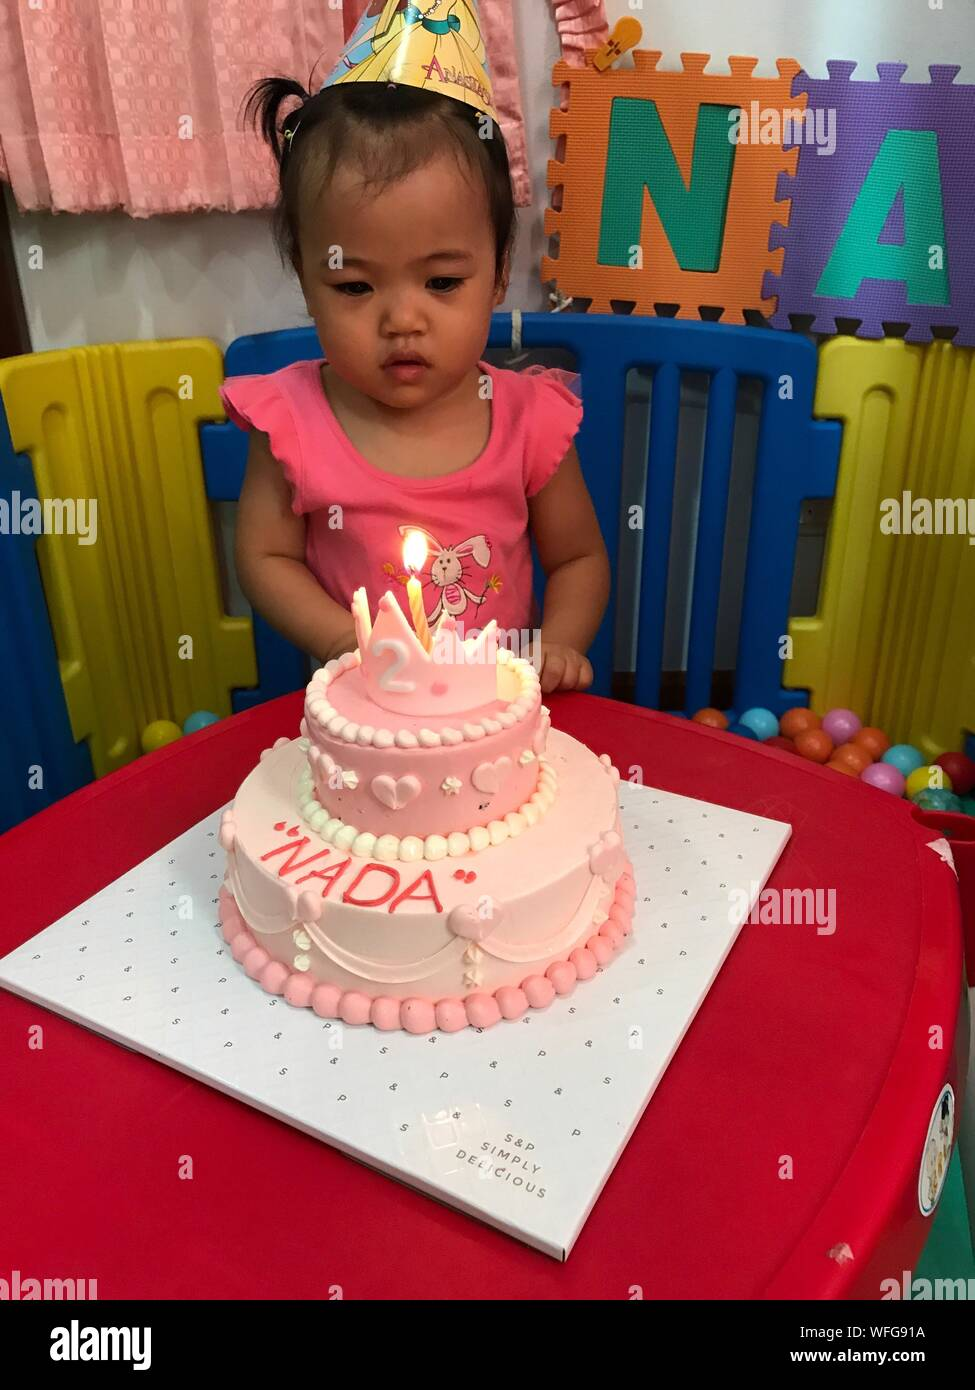 Remarkable Cute Baby Girl Looking At Burning Candle On Birthday Cake Stock Funny Birthday Cards Online Inifofree Goldxyz